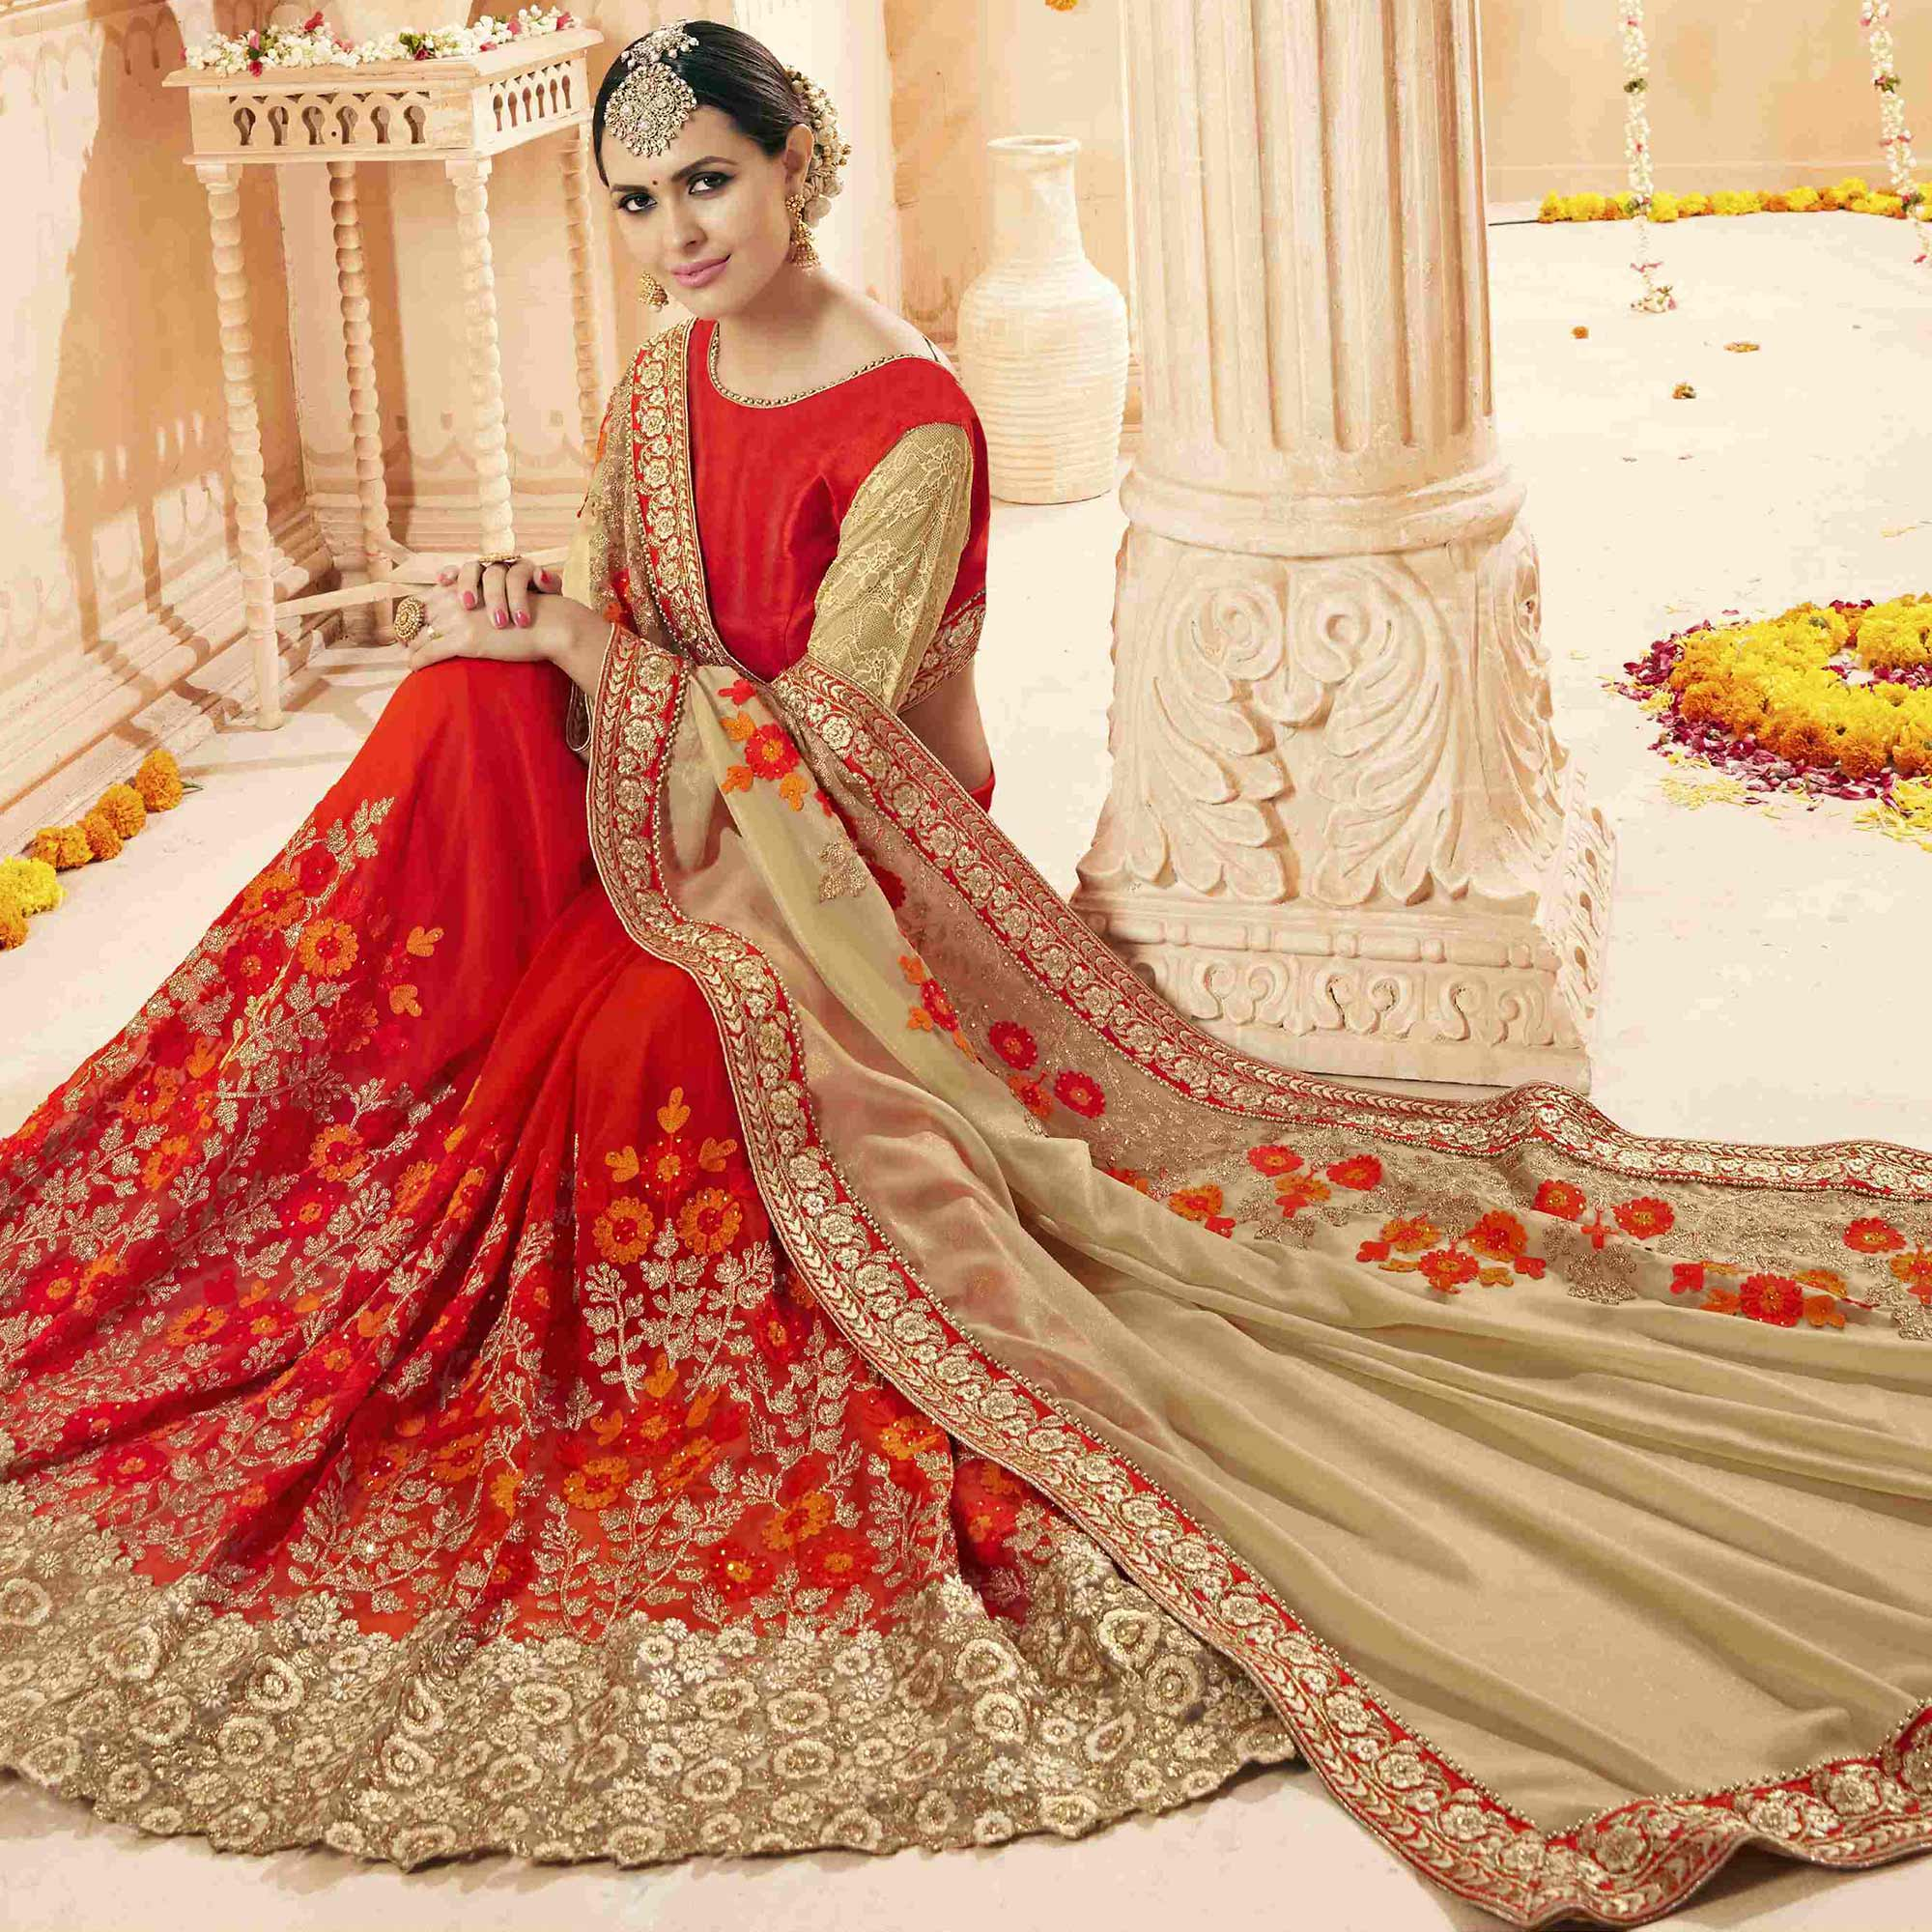 Ravishing Red-Beige Colored Partywear Embroidered Faux Georgette Saree